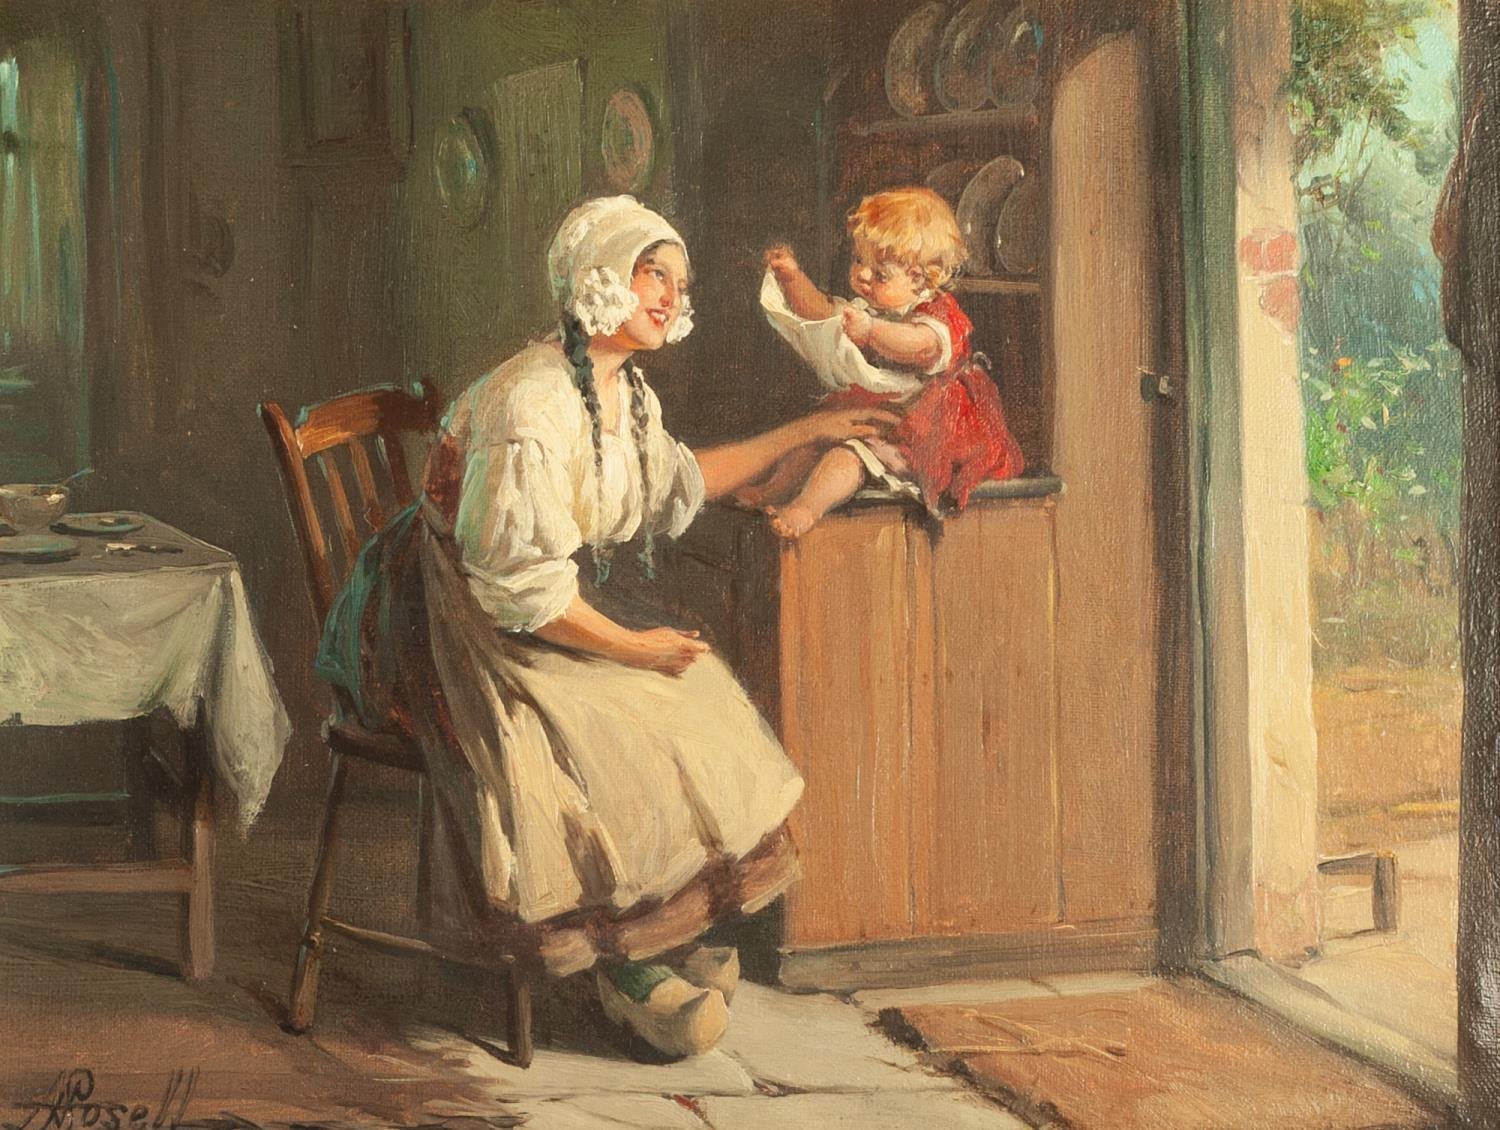 """Lot 240 - ALEXANDER ROSELL (1859 - 1922) OIL PAINTING ON CANVAS """"Peep-Boo"""", a mother and child in a cottage"""